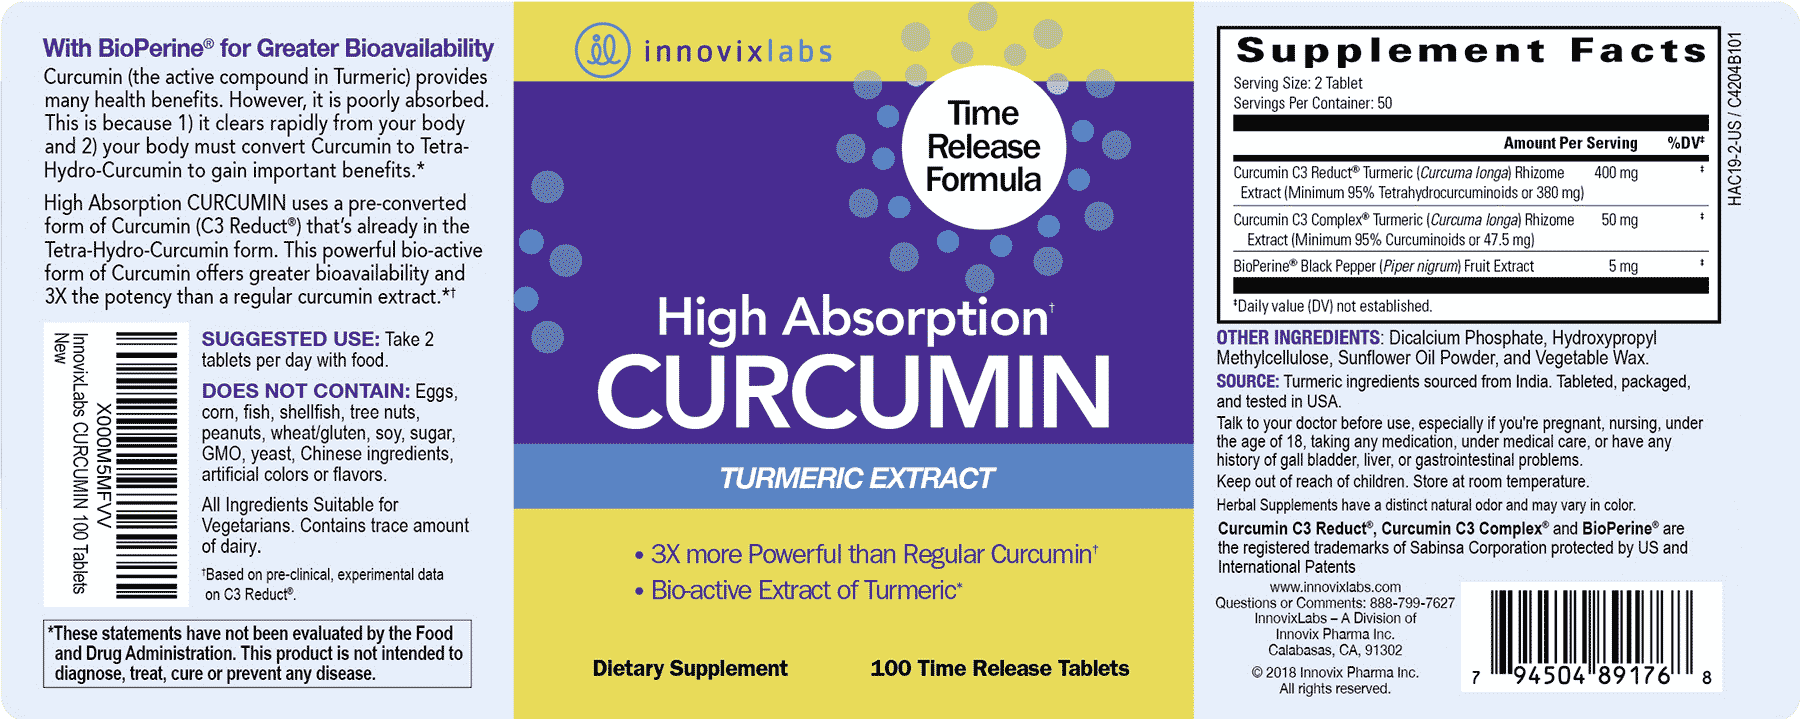 High Absorption Curcumin label